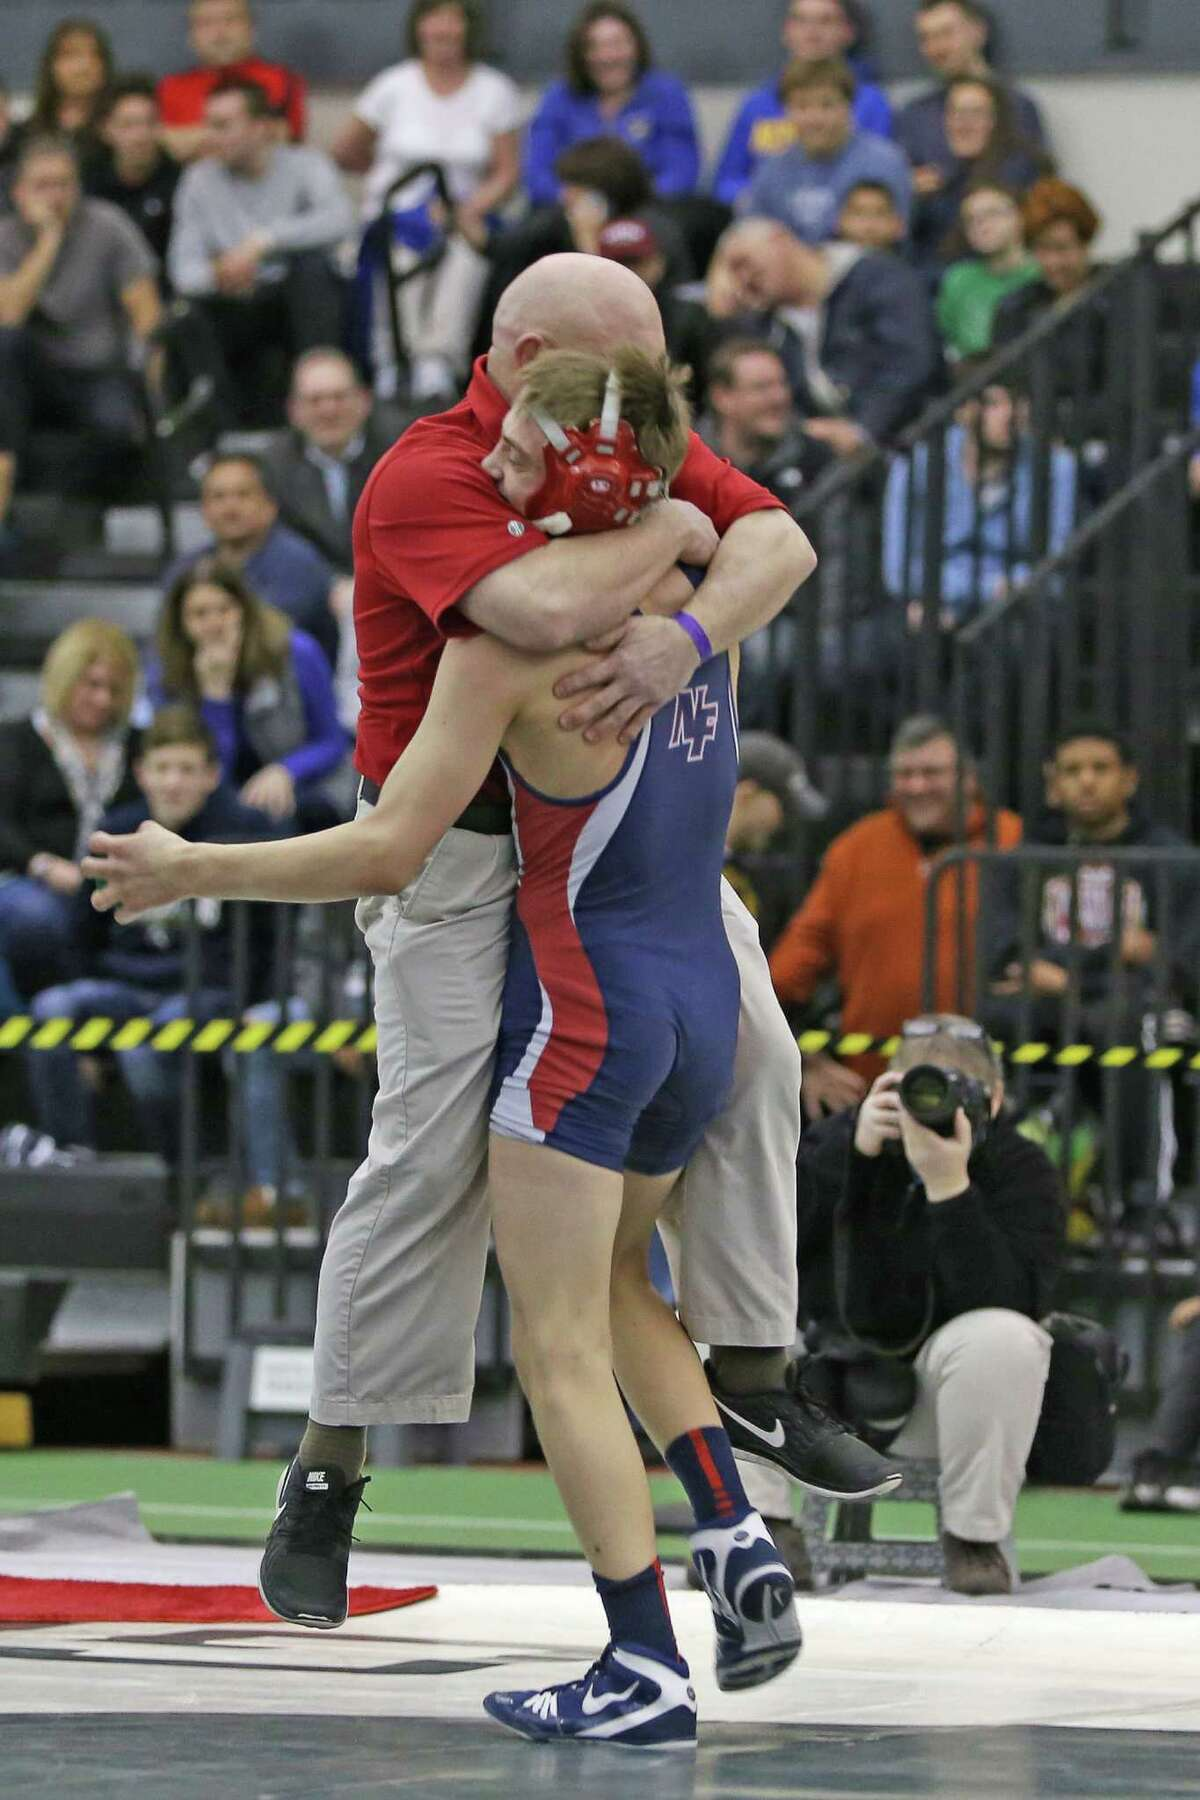 New Fairfield High School's Alec Opsal celebrates with coach Paul Musso after his win at 120 pounds during the State Open wrestling championships at Flyod Little Athletic Center in New Haven last month.